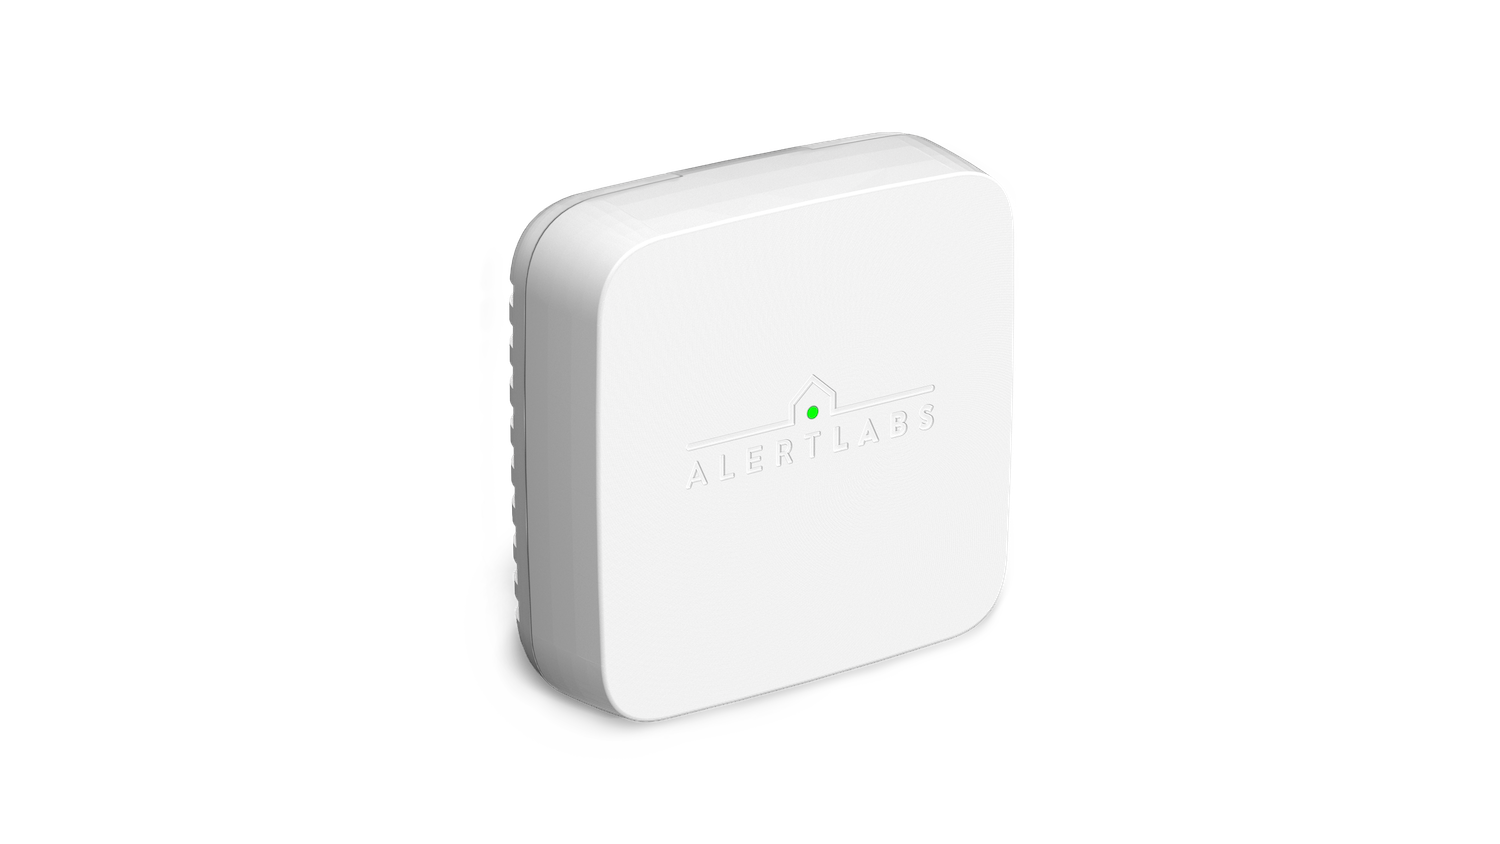 Humie humidity and temperature sensor